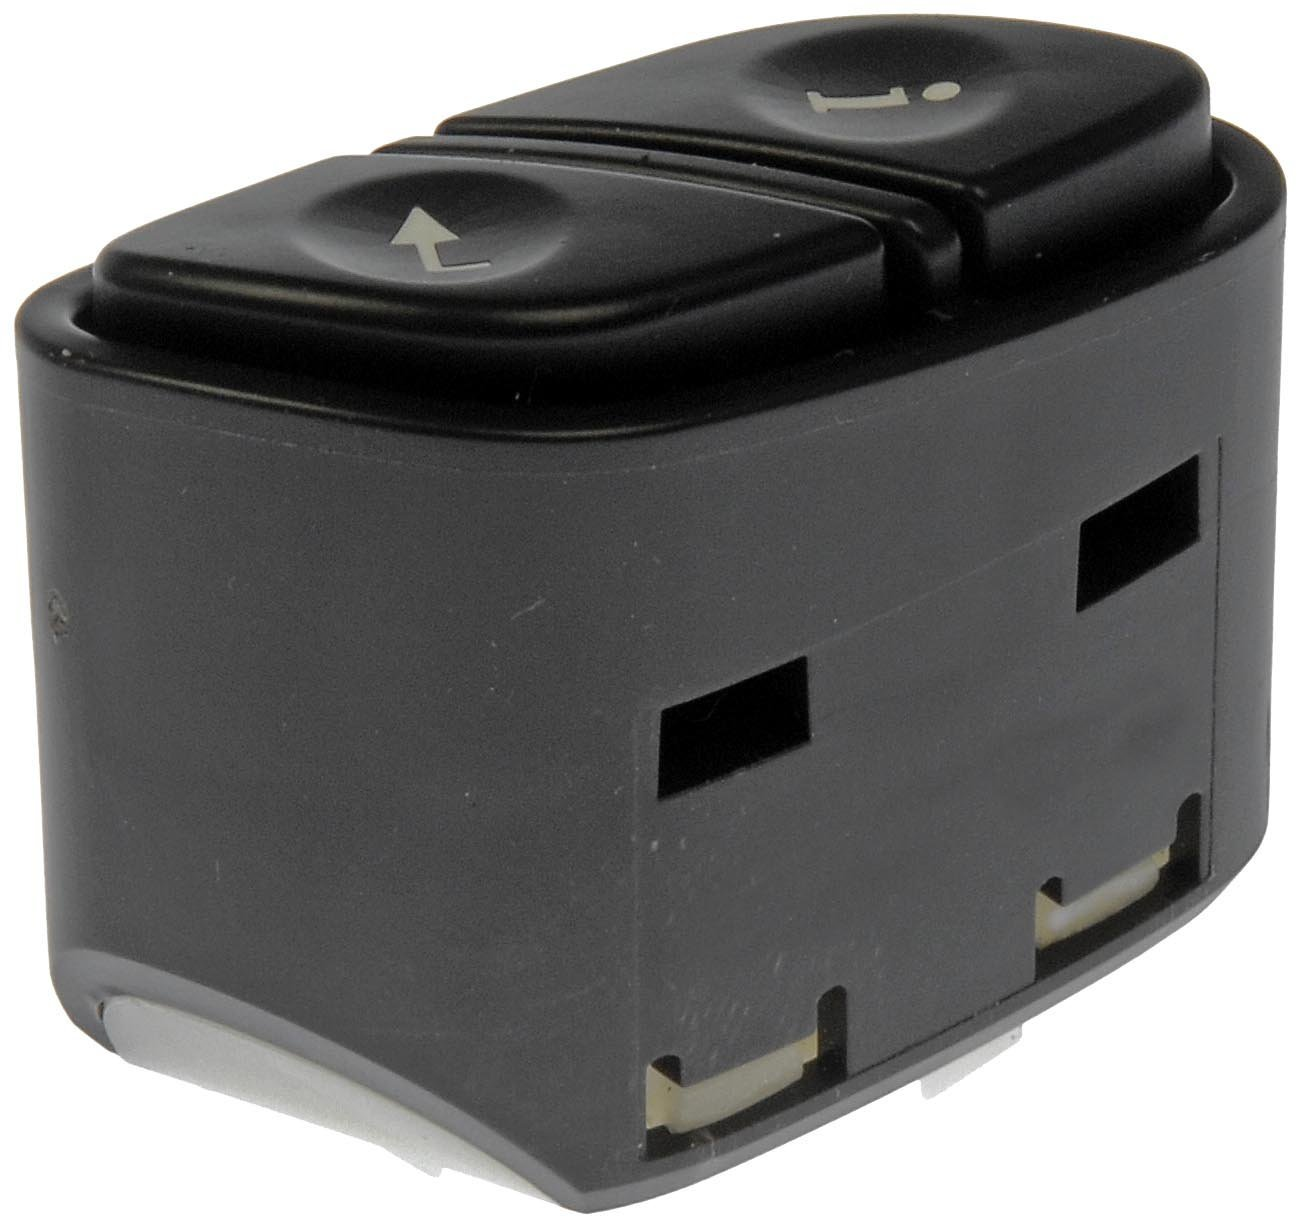 901-121 Driver Information Switch, Engineered Wheel a Steering highquality Dorman AccessoriesParts for 901121 Driver Information long life.., By Dorman